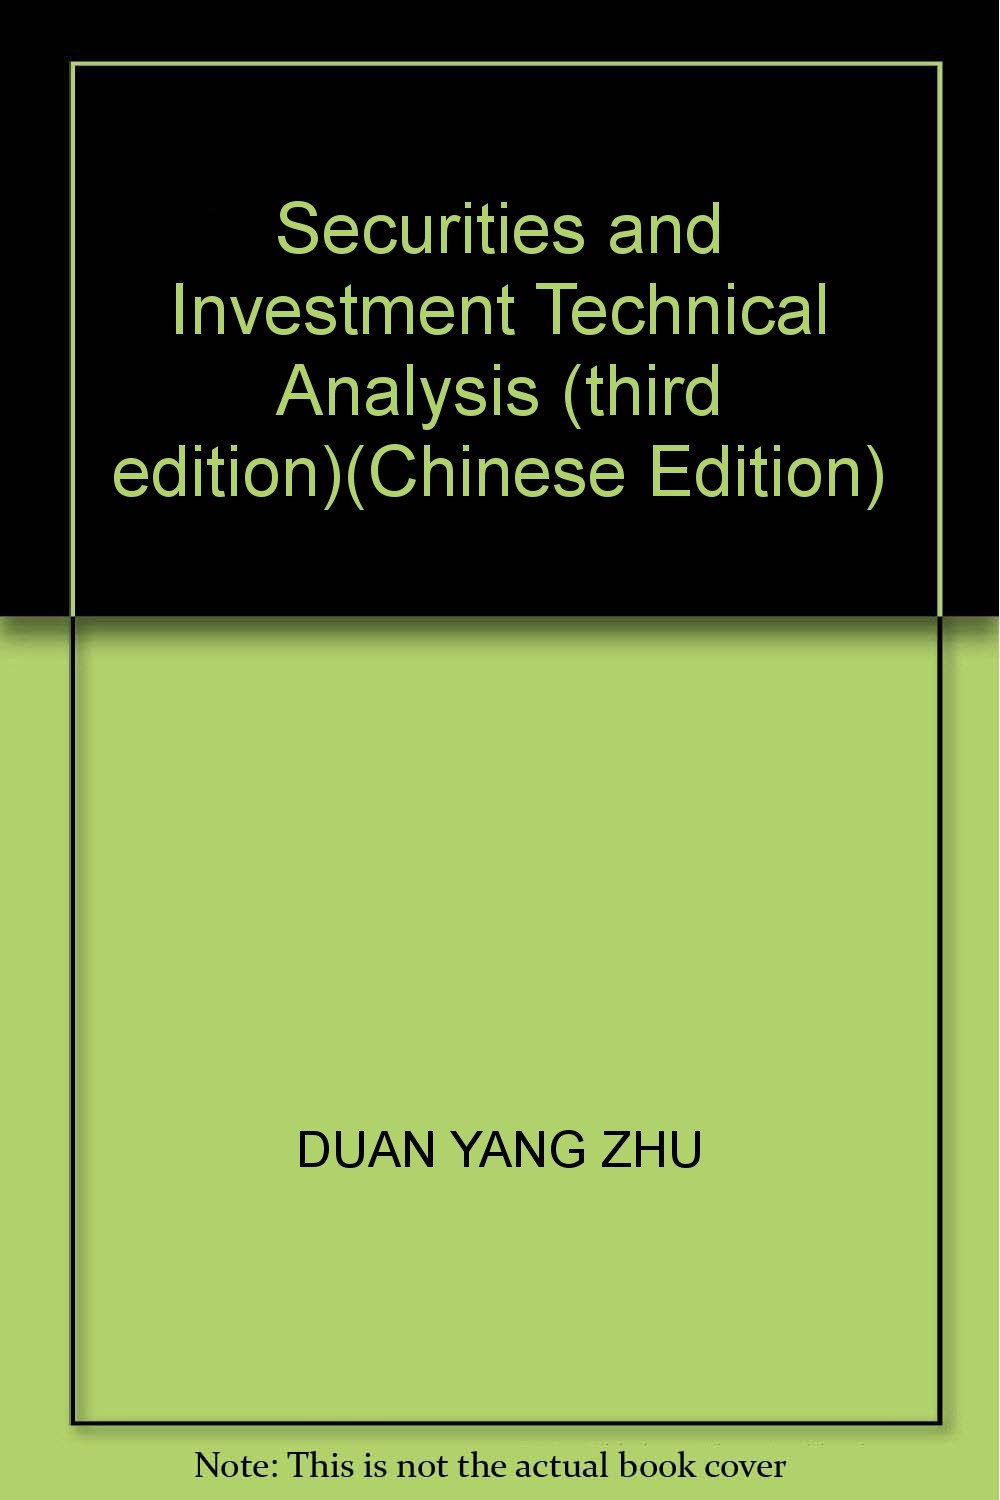 Download Securities and Investment Technical Analysis (third edition)(Chinese Edition) pdf